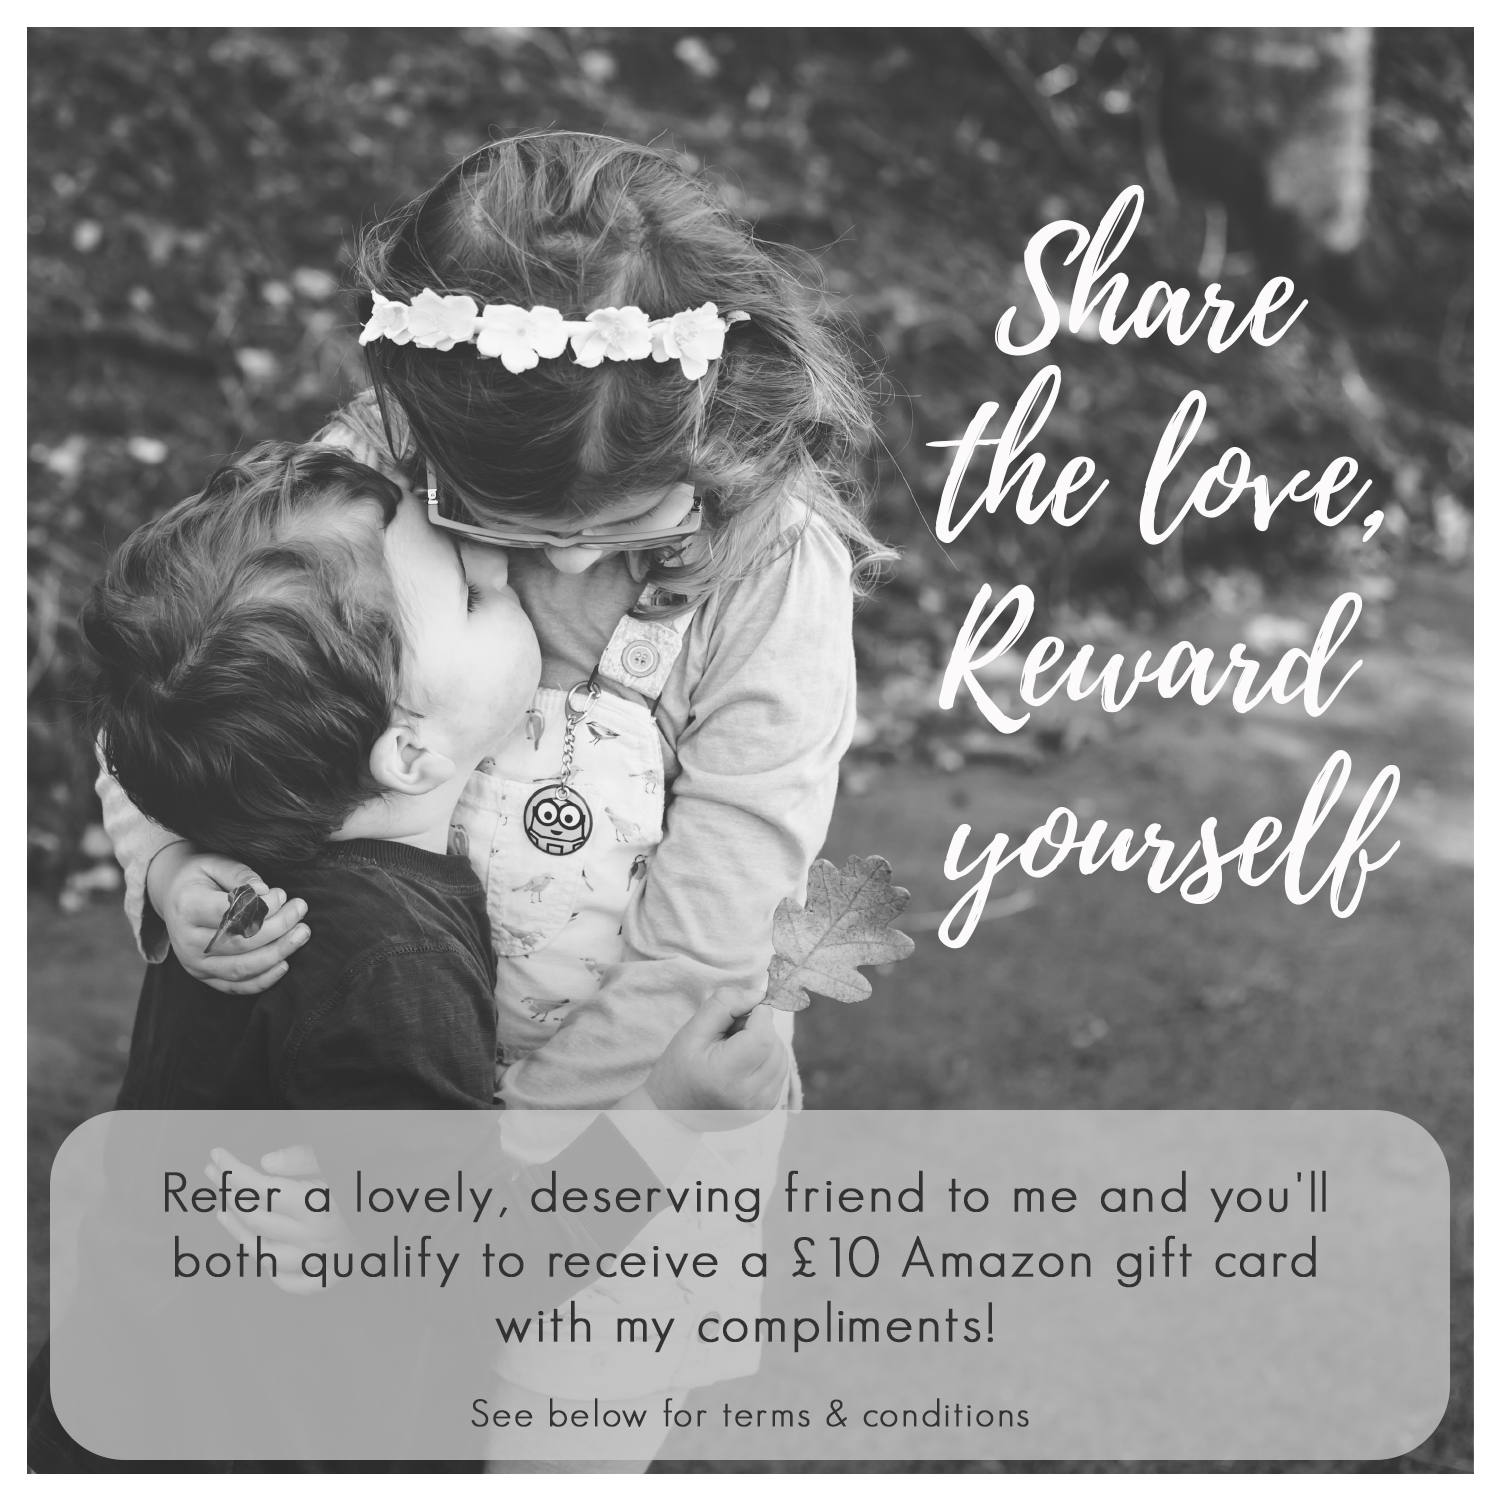 Share the love, reward yourself referral programme offer